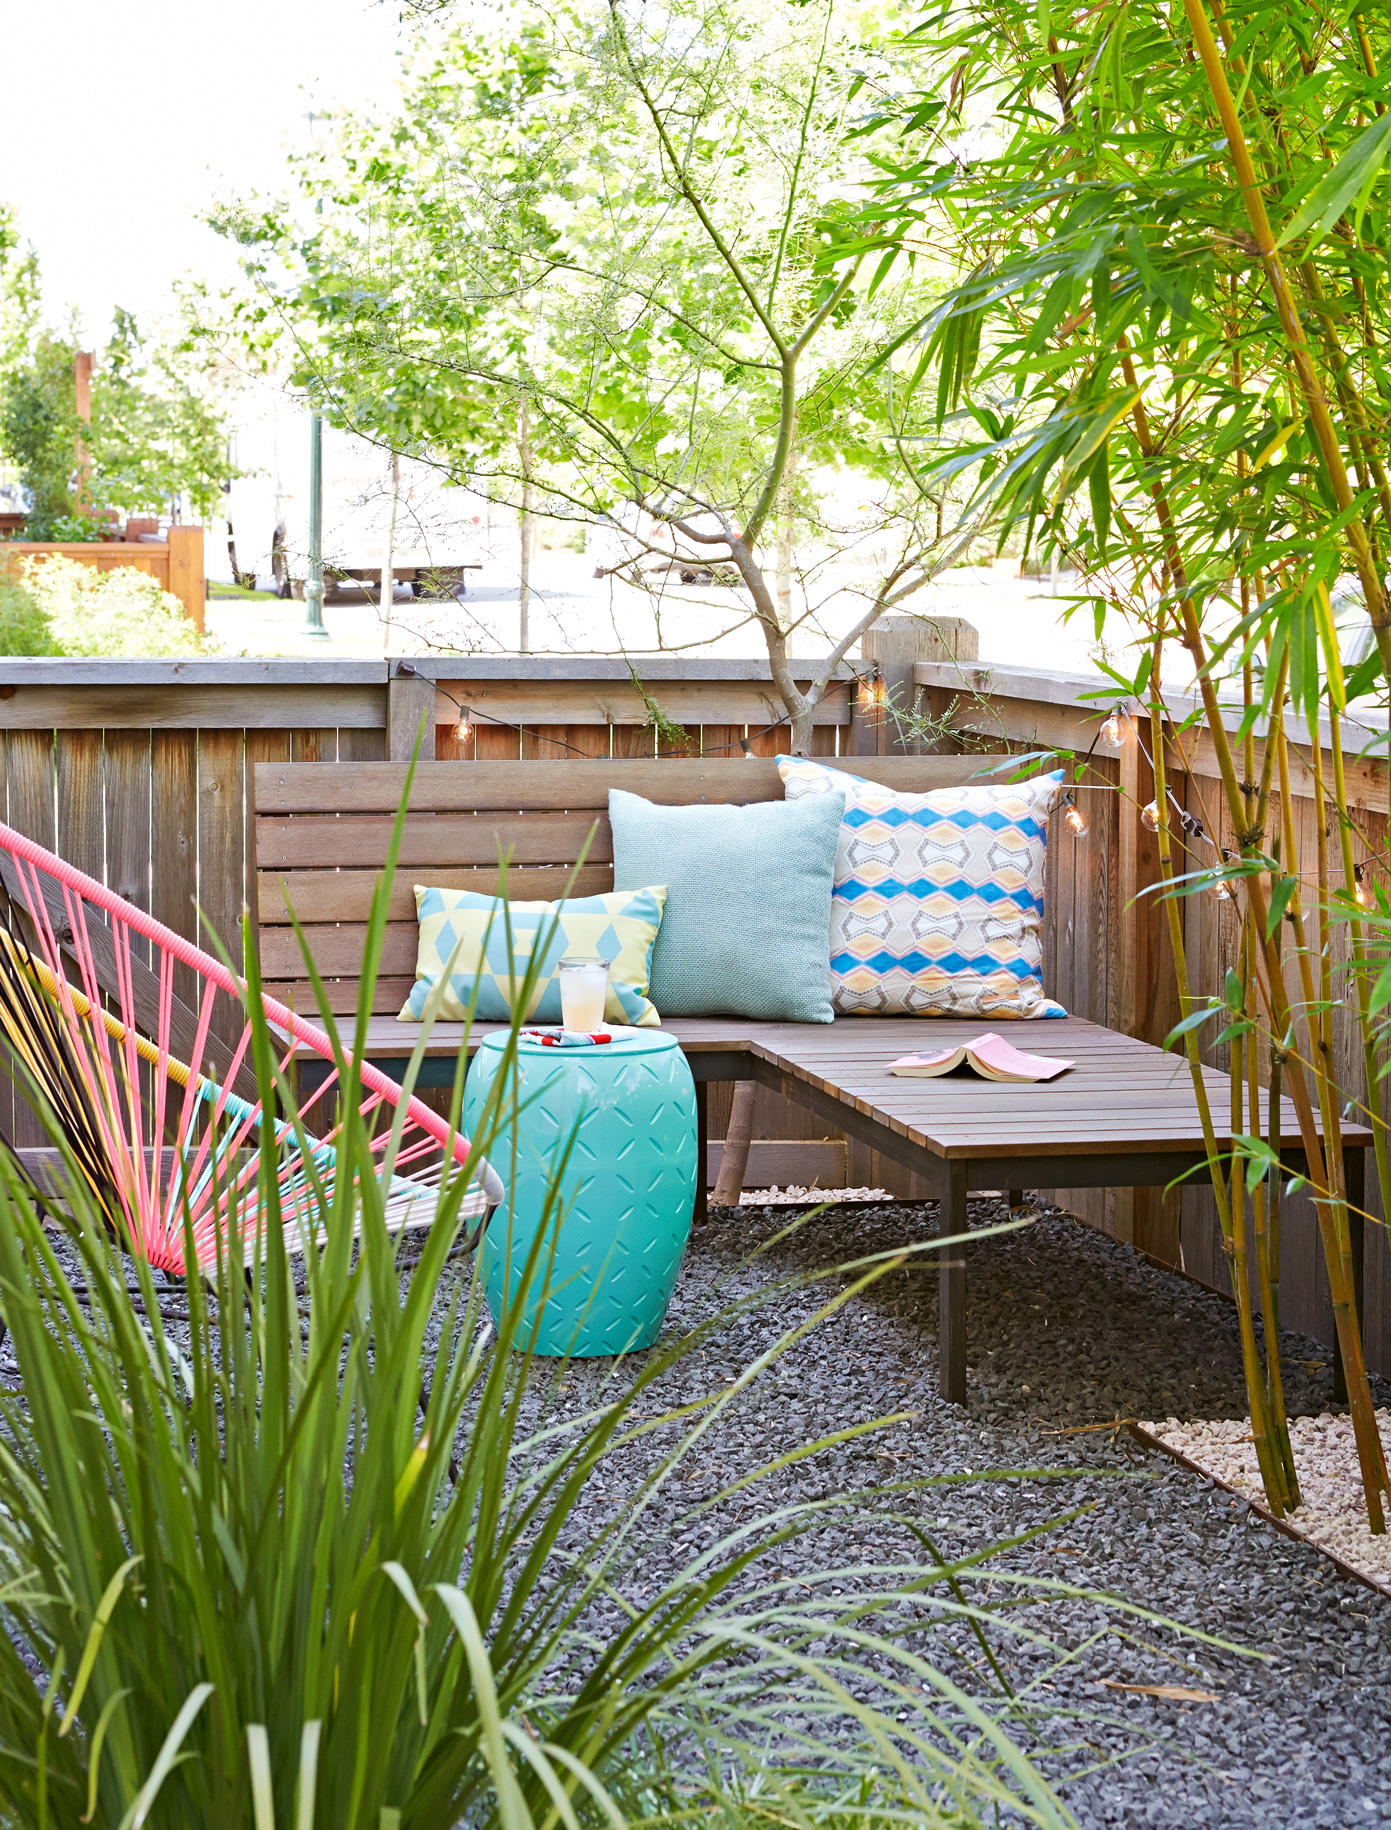 23 Inexpensive Ways To Dress Up Your Backyard within Diy Backyard Makeover Ideas